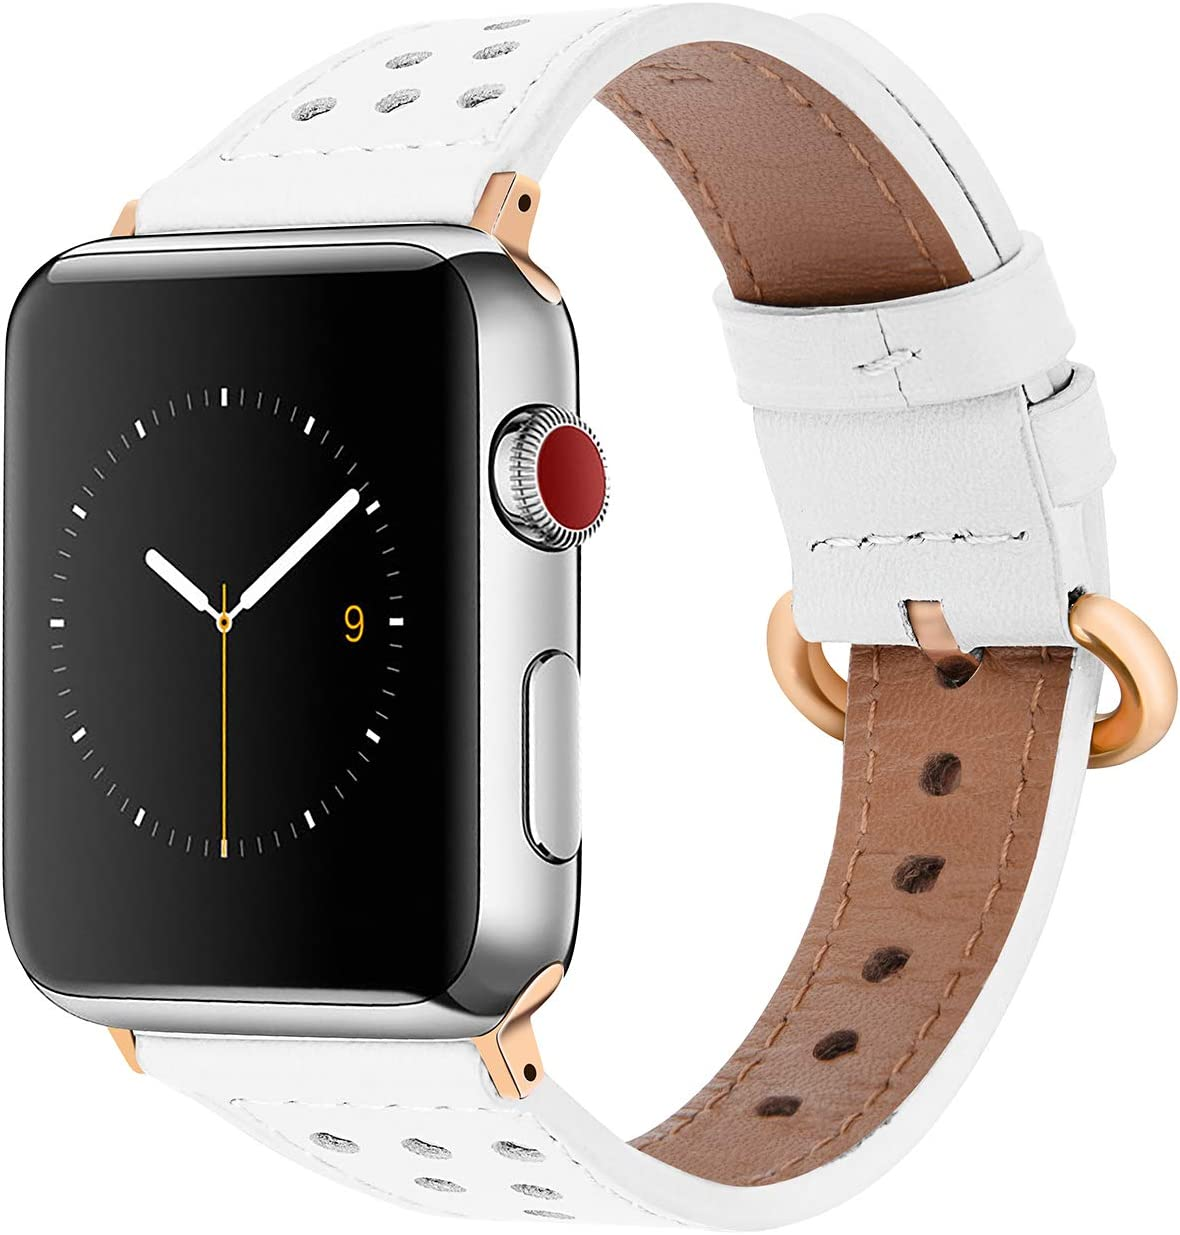 EAVAE Watch Bands Compatible with Apple Watch Bands 40mm 38mm, White Leather iWatch Bands for Apple Watch Series 5 4 3 2 1